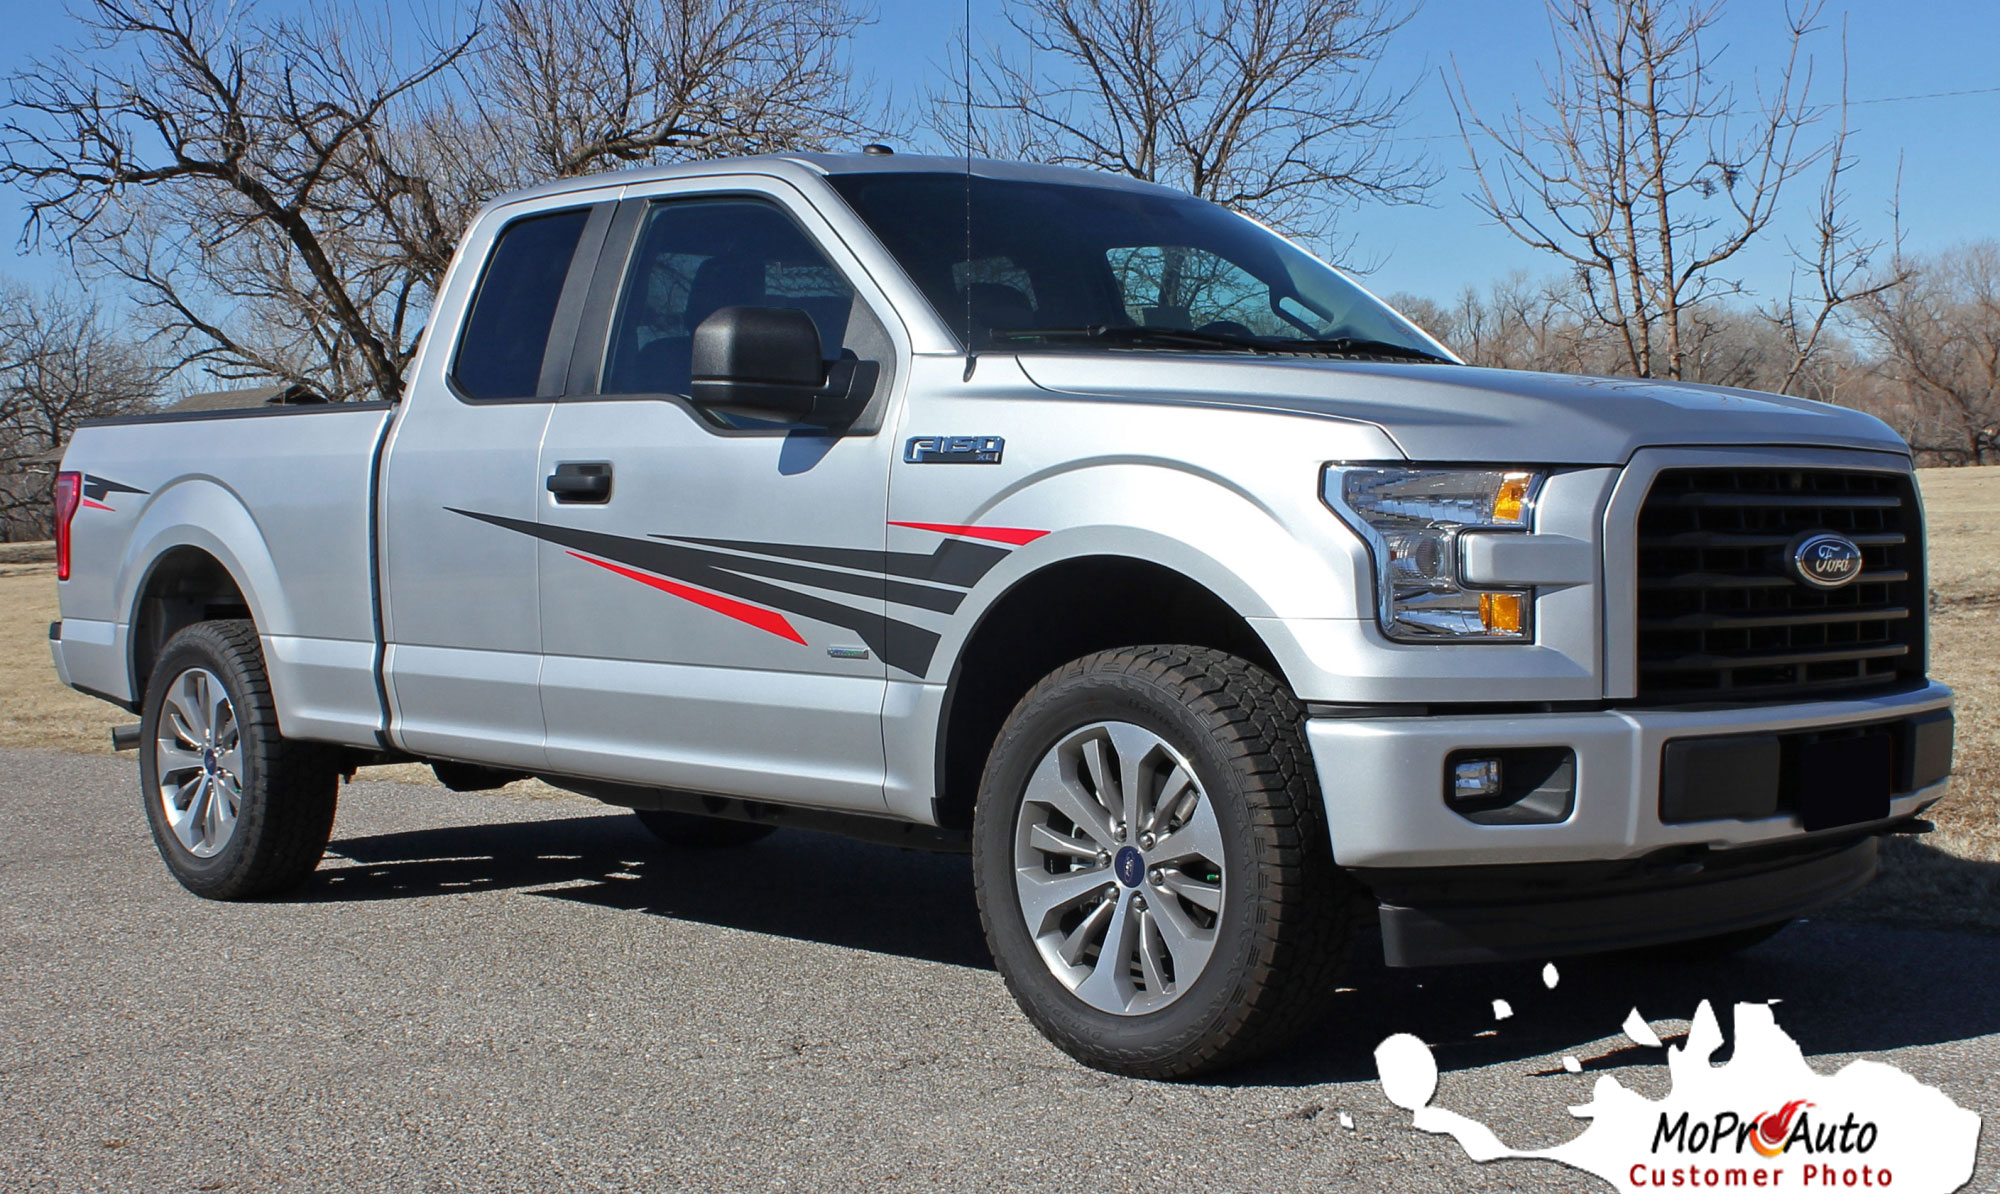 Apollo Fender Door Ford F-Series F-150 Appearance Package Vinyl Graphics and Decals Kit - Customer Photo